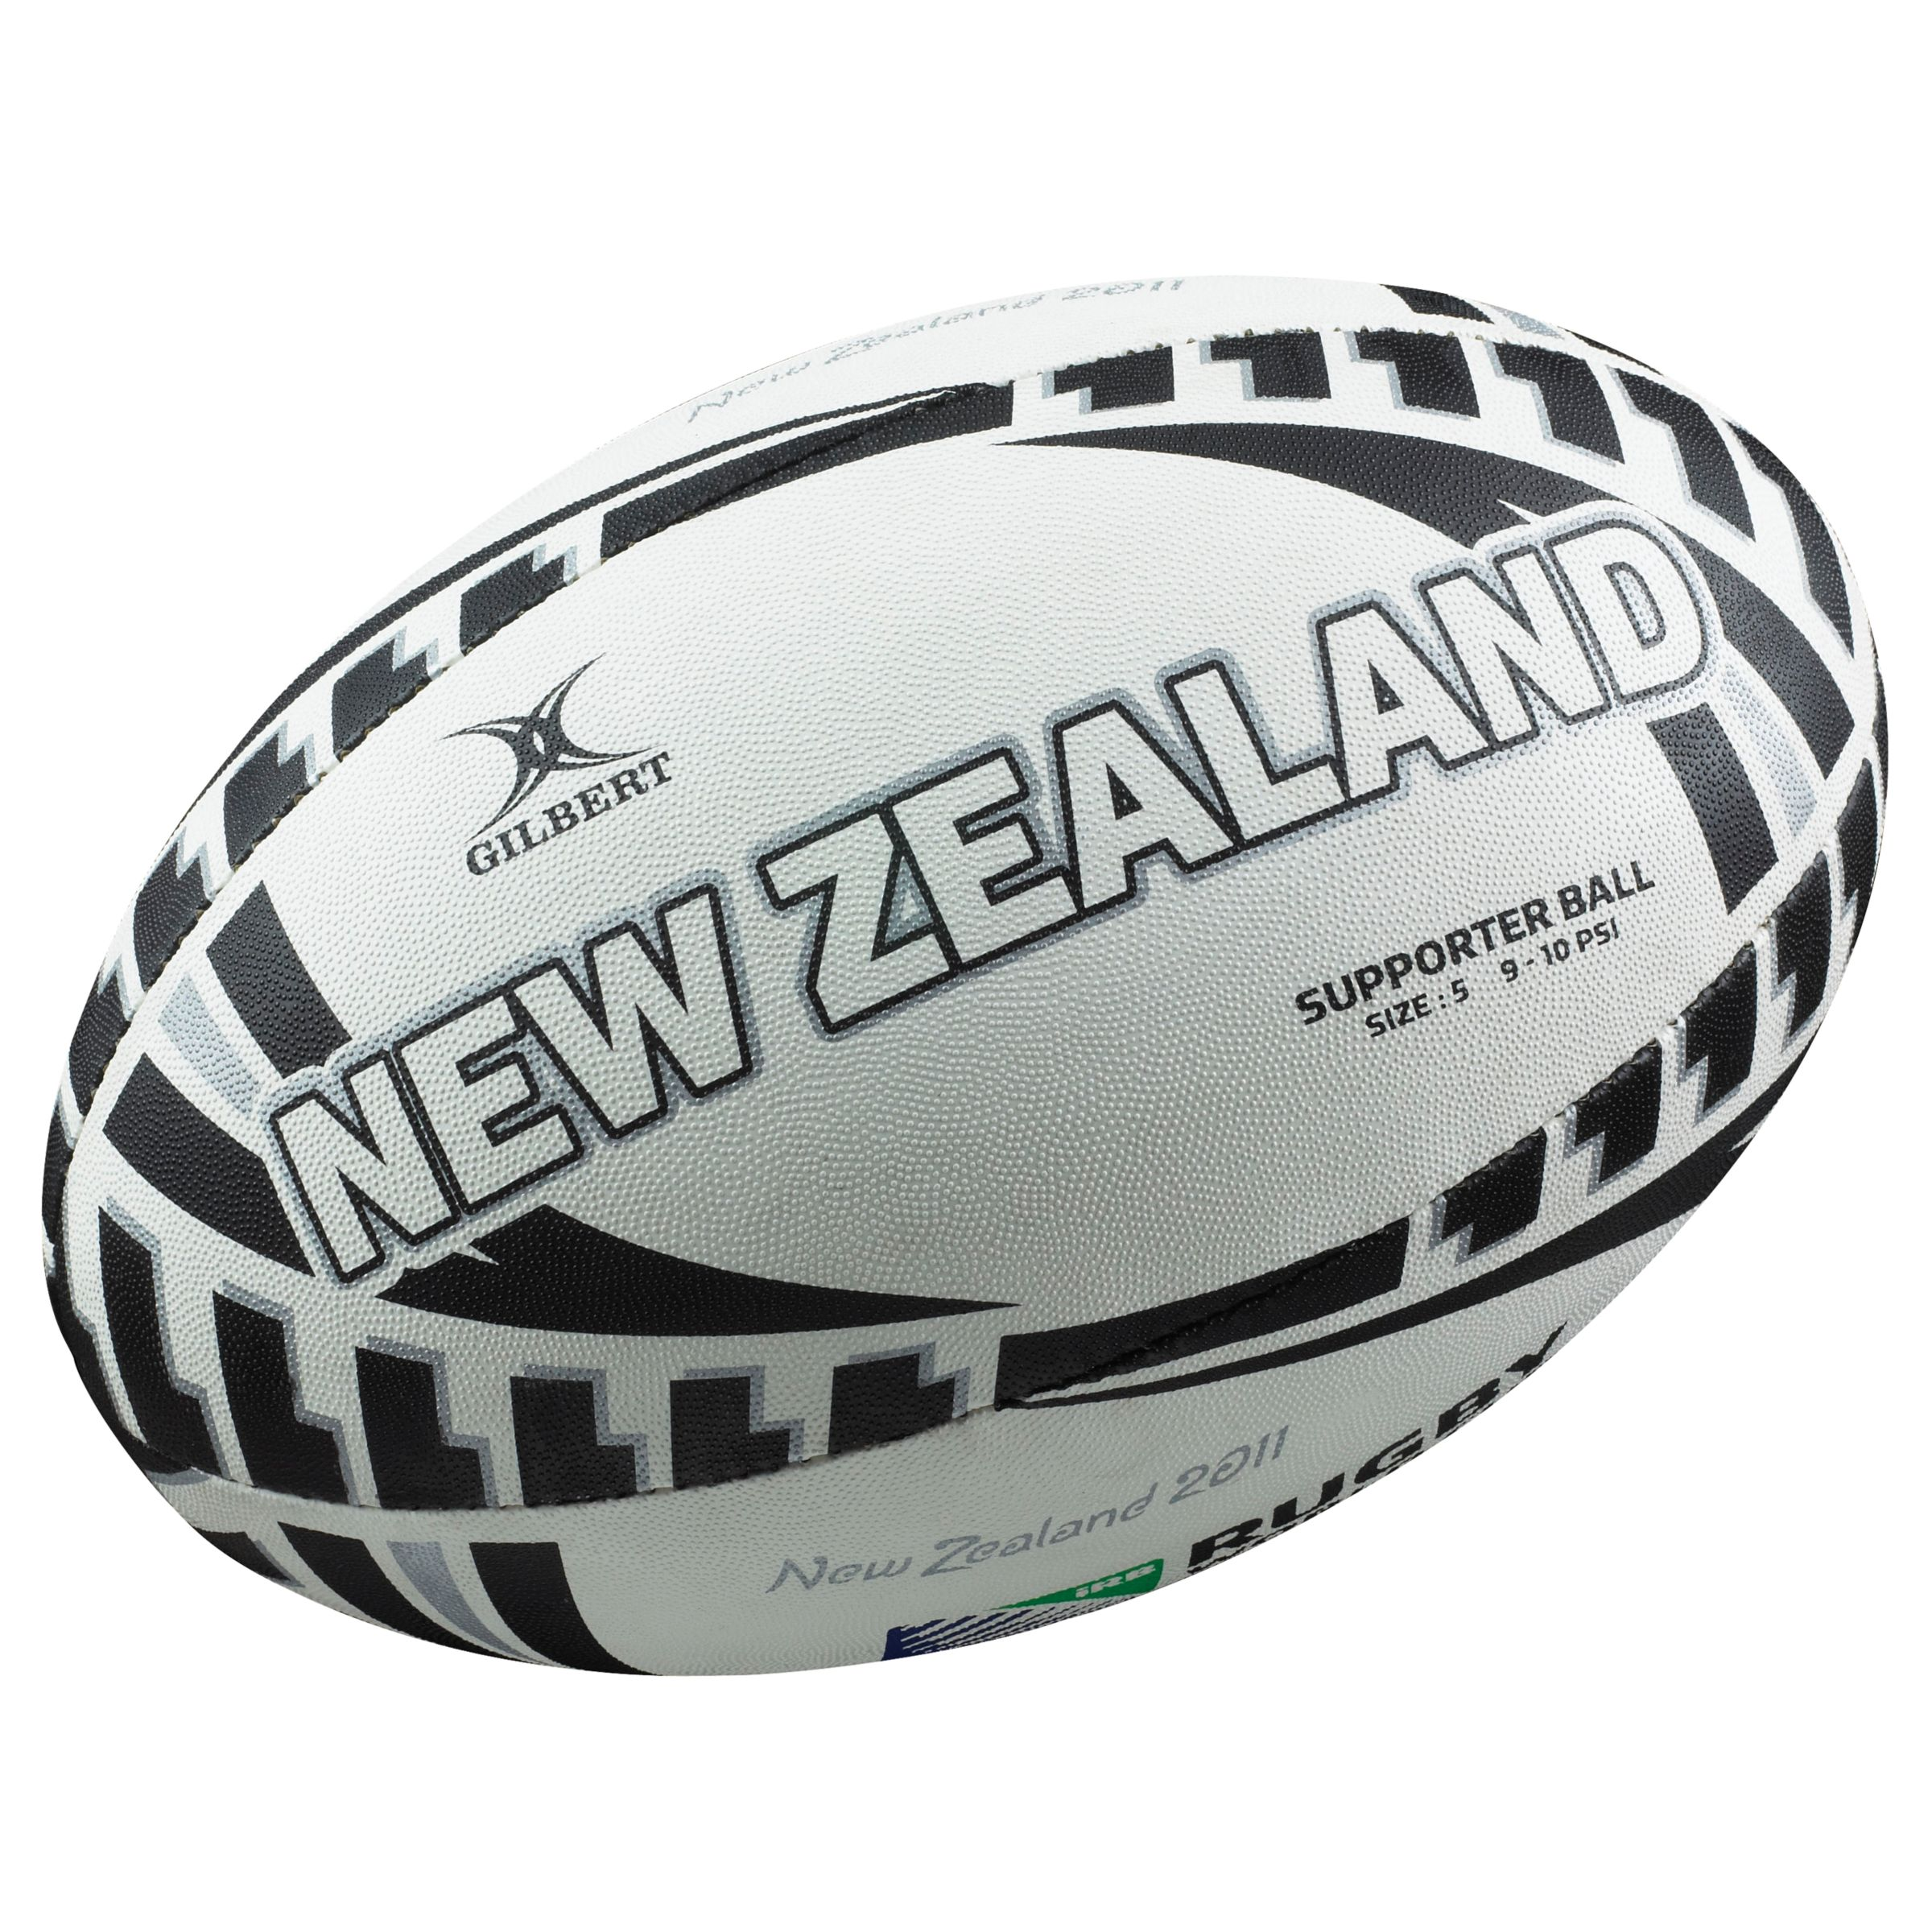 Gilbert Rugby World Cup New Zealand Supporters Ball, Size 5